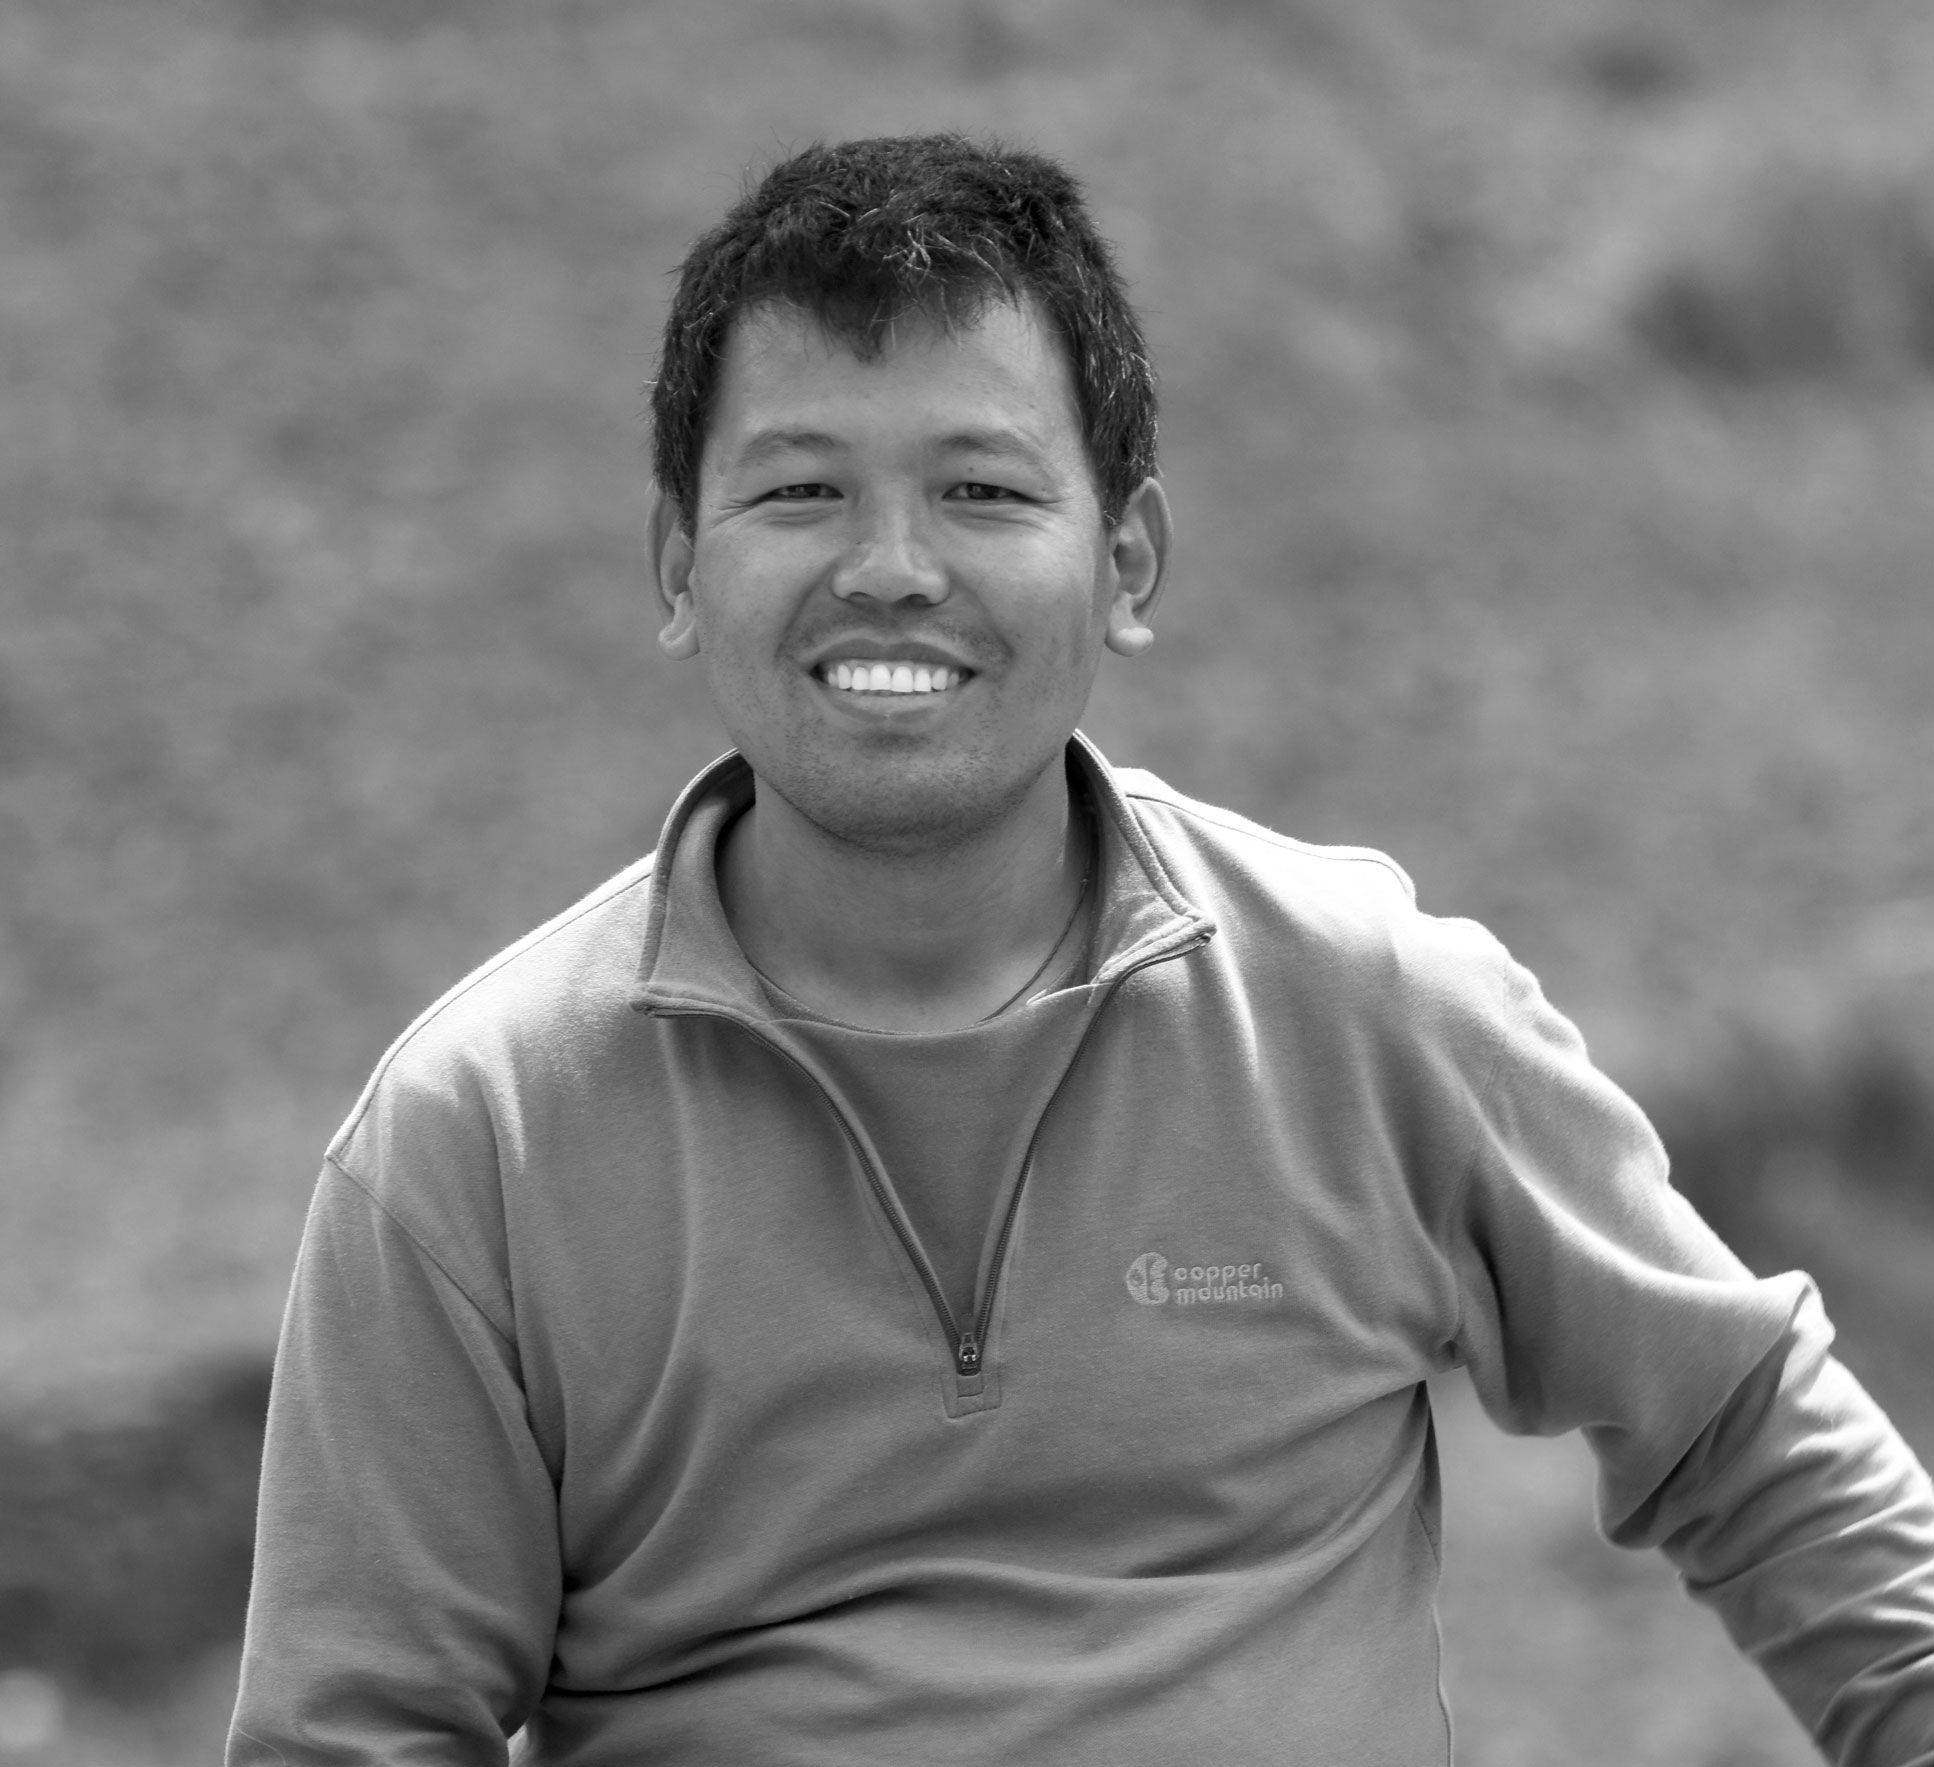 KARMA SHERPA  A man of action, Karma was born into a nomadic family in mountainous Nepal. Karma is the Executive Director of our partner organization The Small World. His skills in community organization and project management are exceptional. The Small World has been in operation for 10 years and is very highly regarded in Solukhumbu and the Kathmandu Valley.